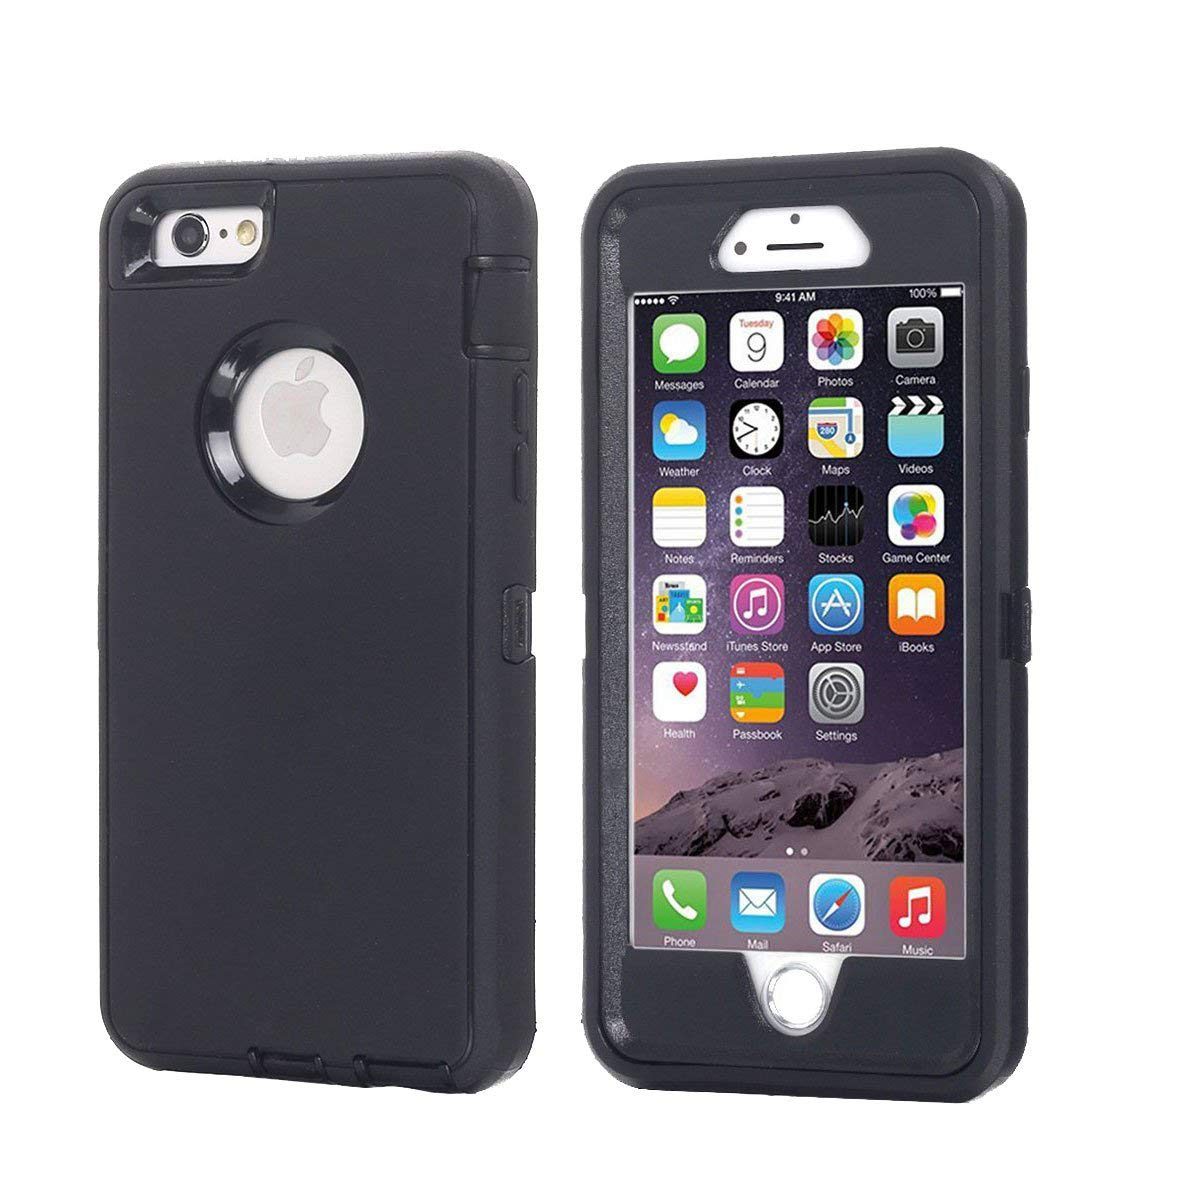 new product 62e1f 8ea56 AICase iPhone 6 Plus Case,iPhone 6S Plus Case [Heavy Duty] Built-in Screen  Protector Tough 4 in 1 Rugged Shockproof Cover for Apple iPhone 6 Plus / 6S  ...